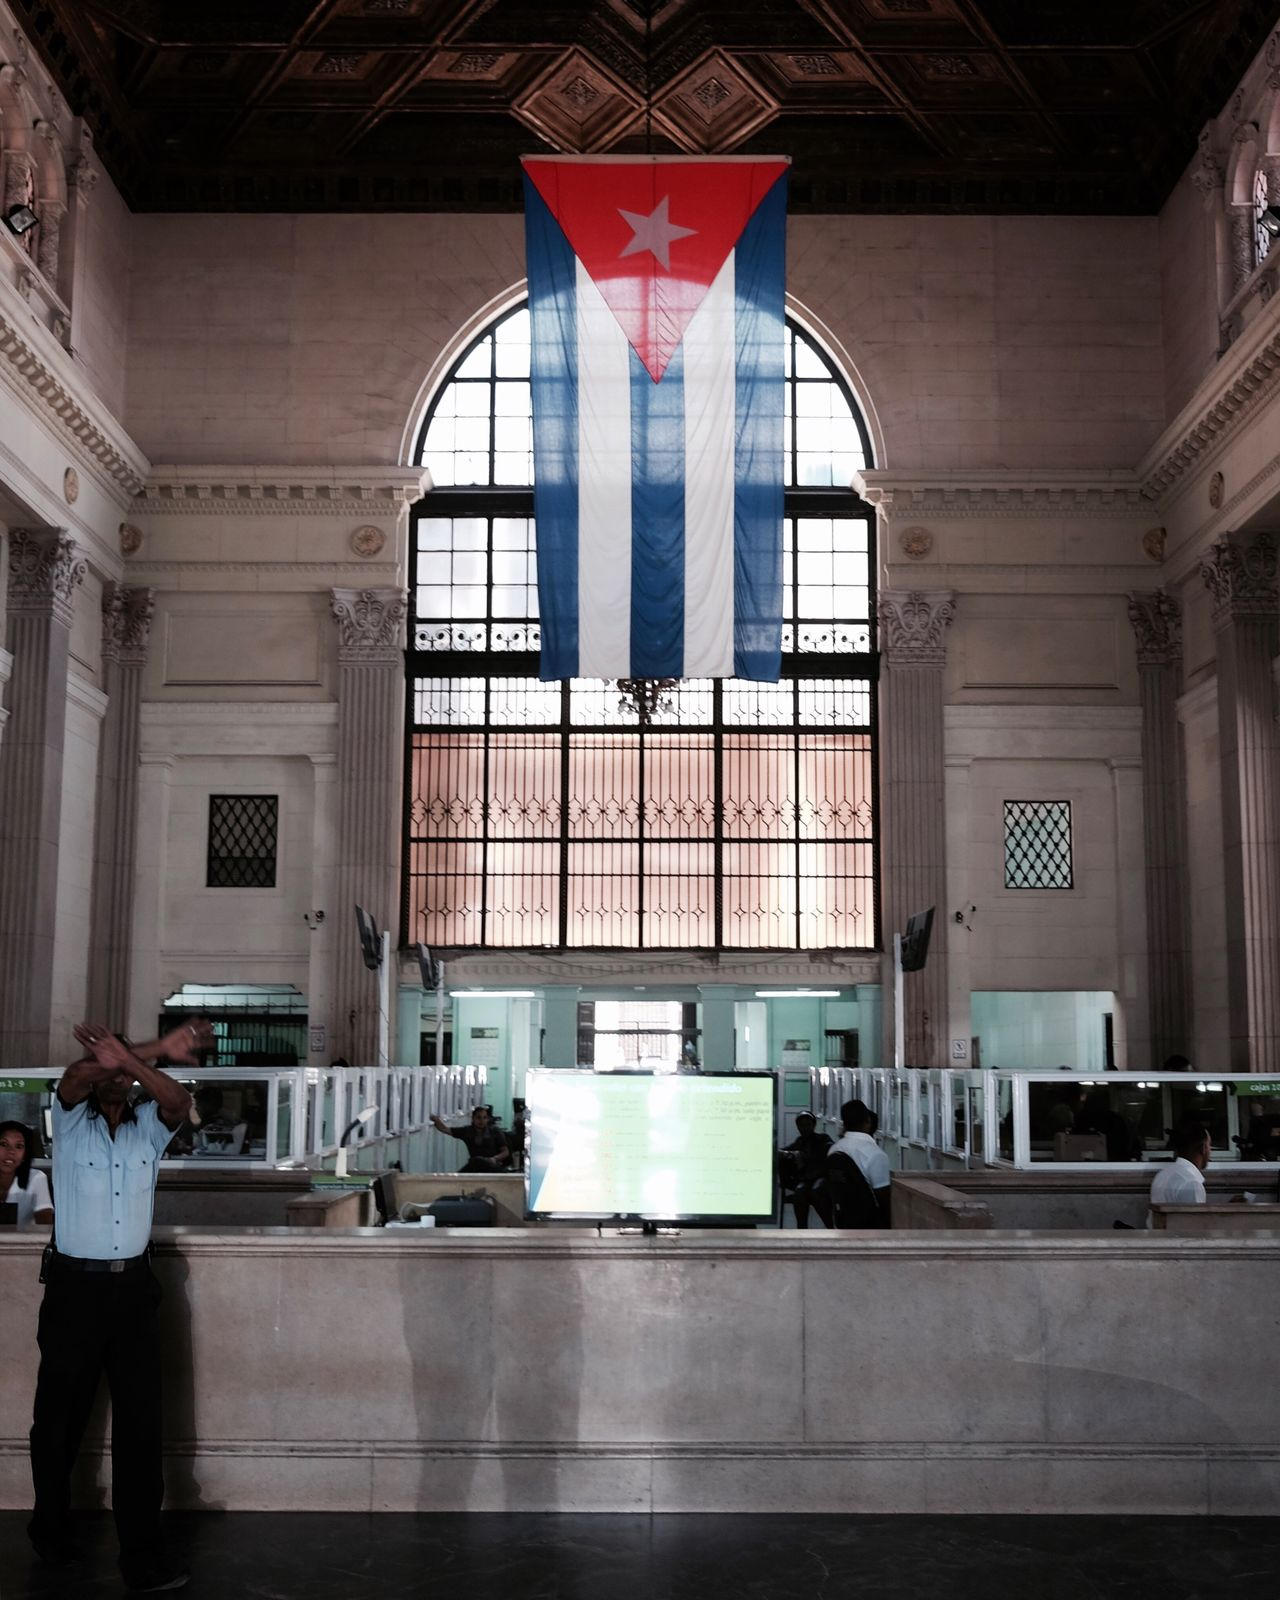 That fun moment when you act all polite and apologetic after being told by a heavily gesturing security guard to absolutely NOT take any photos and promise you won't take any but have already managed to fire off a few shots😉 One Person Real People Men Day Standing Architecture One Man Only People Adult Adults Only Bank Indoors  Travel Cuba Havana Flag Cuban Flag Security Security Guard